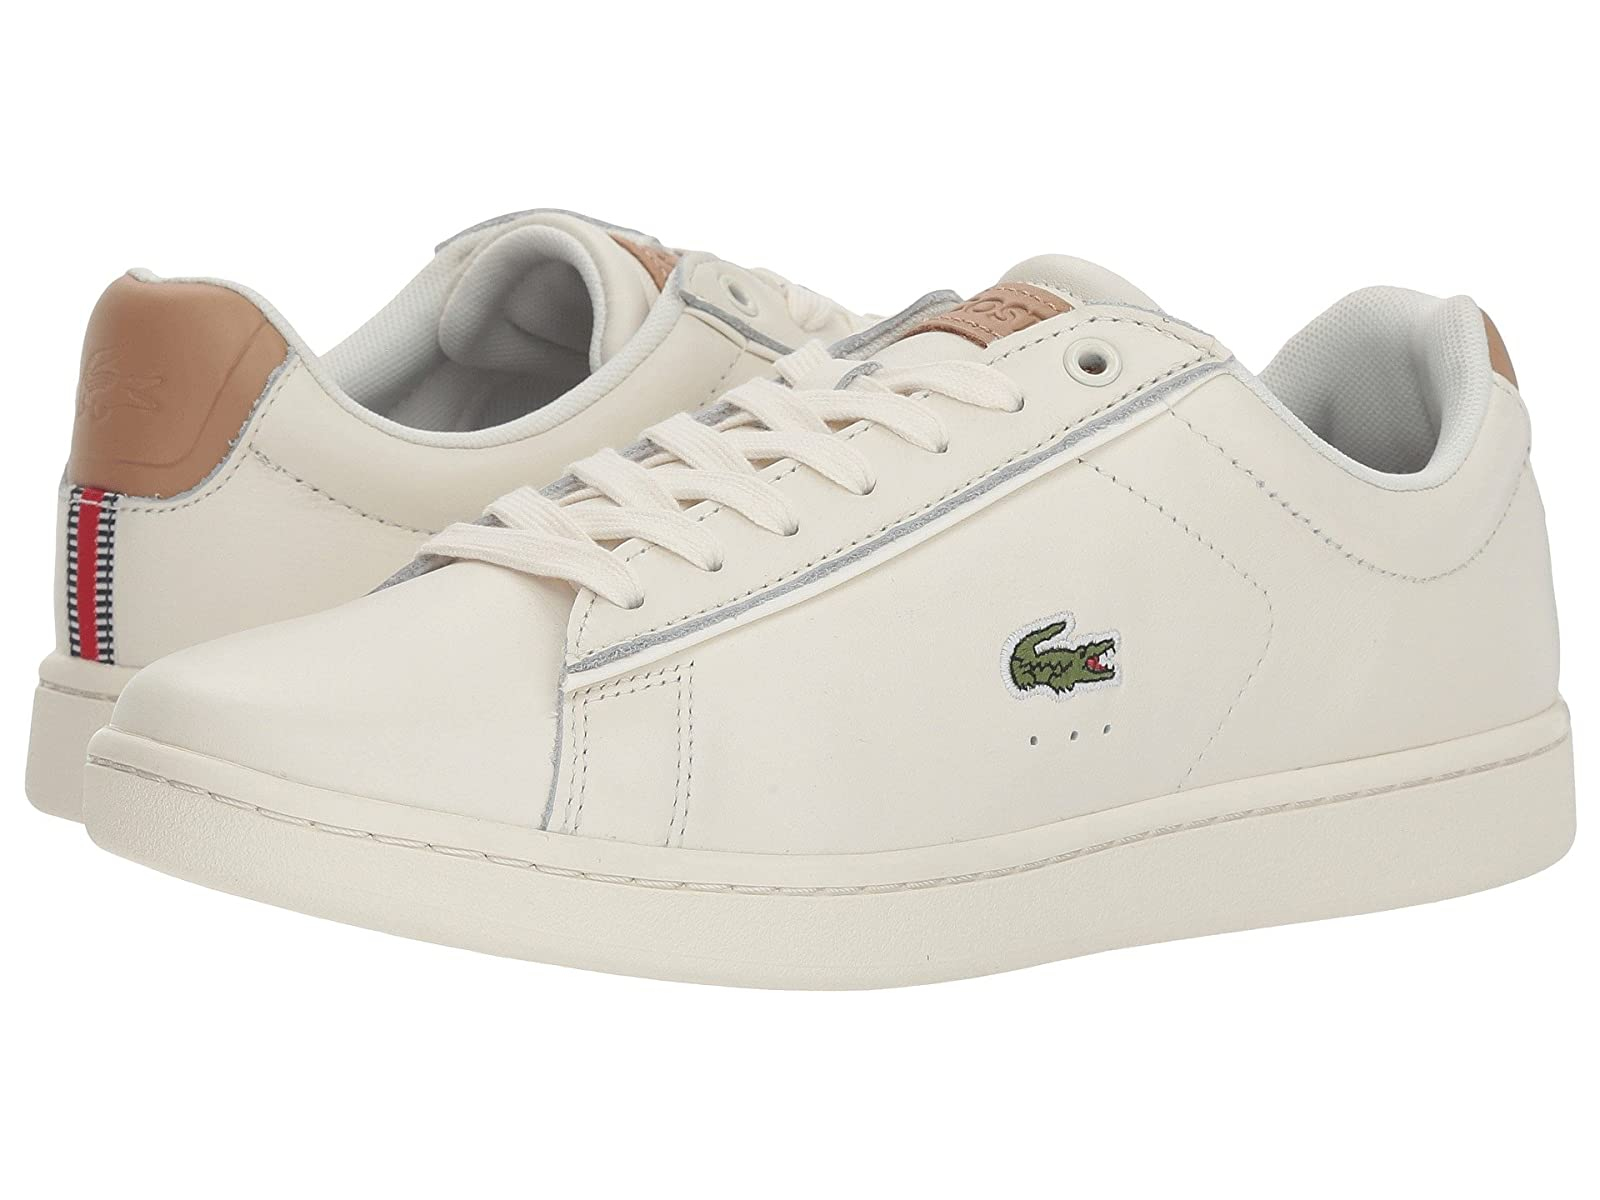 Lacoste Carnaby Evo 218 1Atmospheric grades have affordable shoes